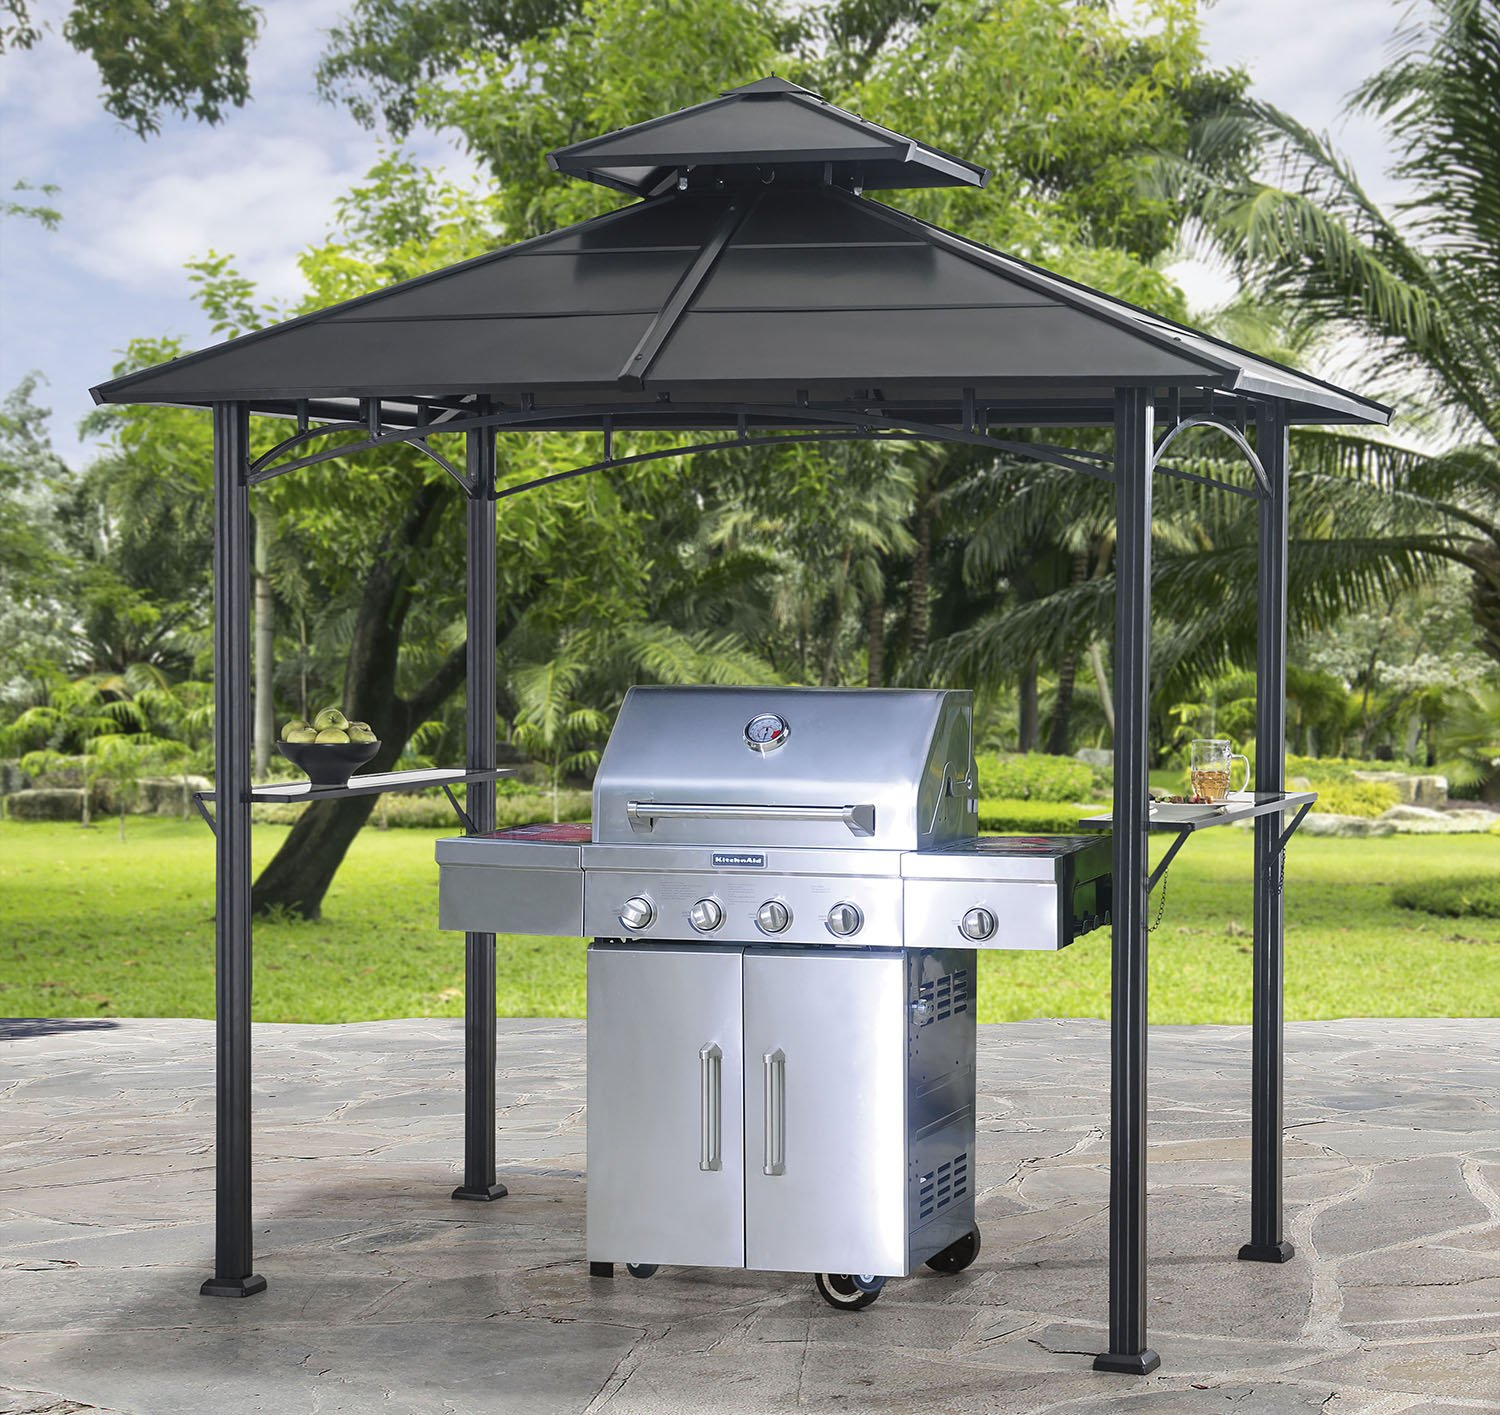 roof enjoy bbq grill outdoor awning gazebo